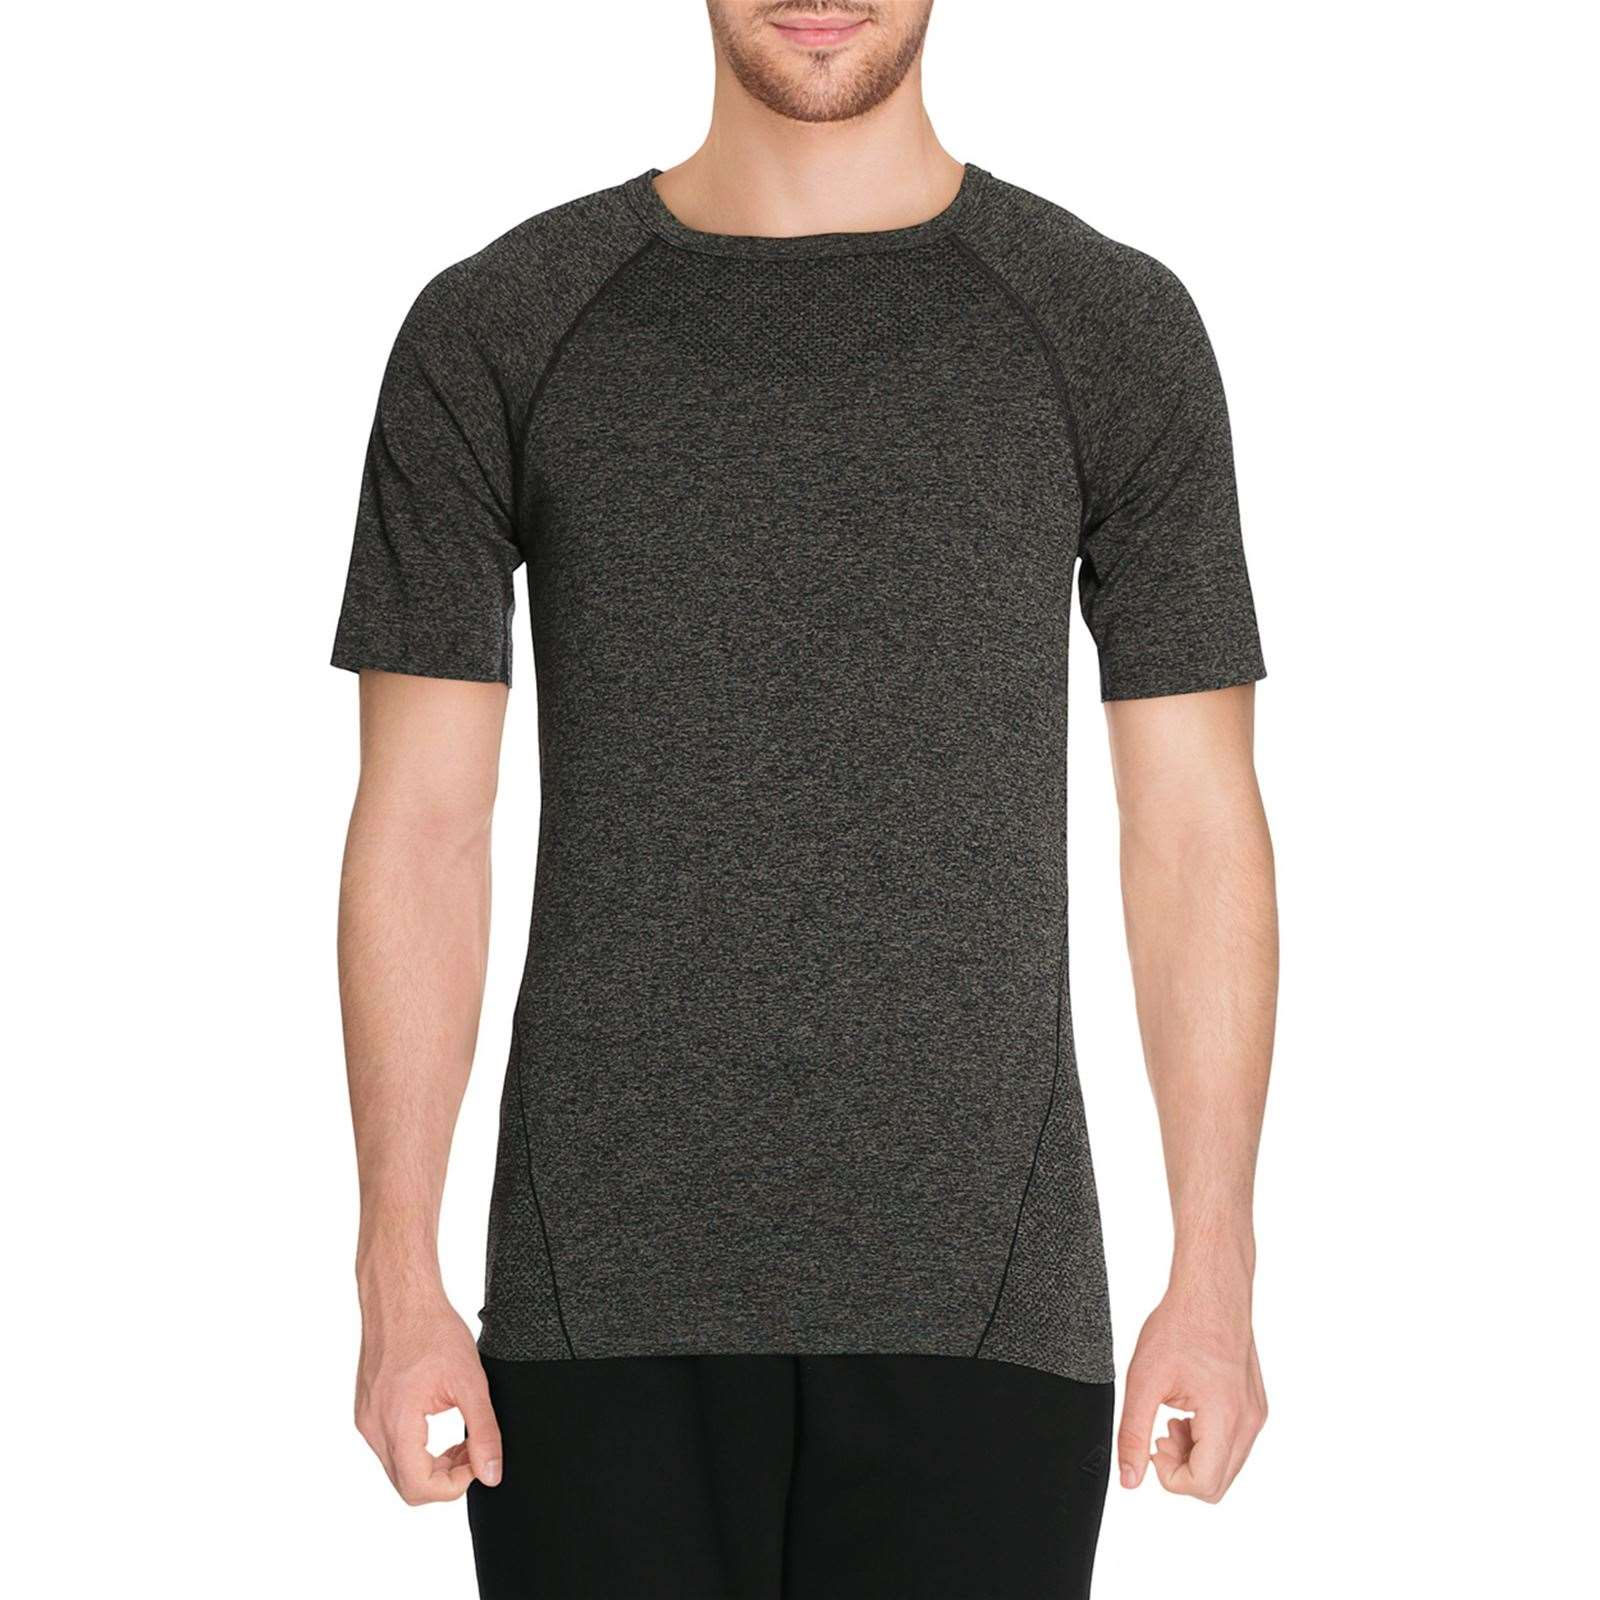 celio ferunning t shirt manches courtes gris chine. Black Bedroom Furniture Sets. Home Design Ideas